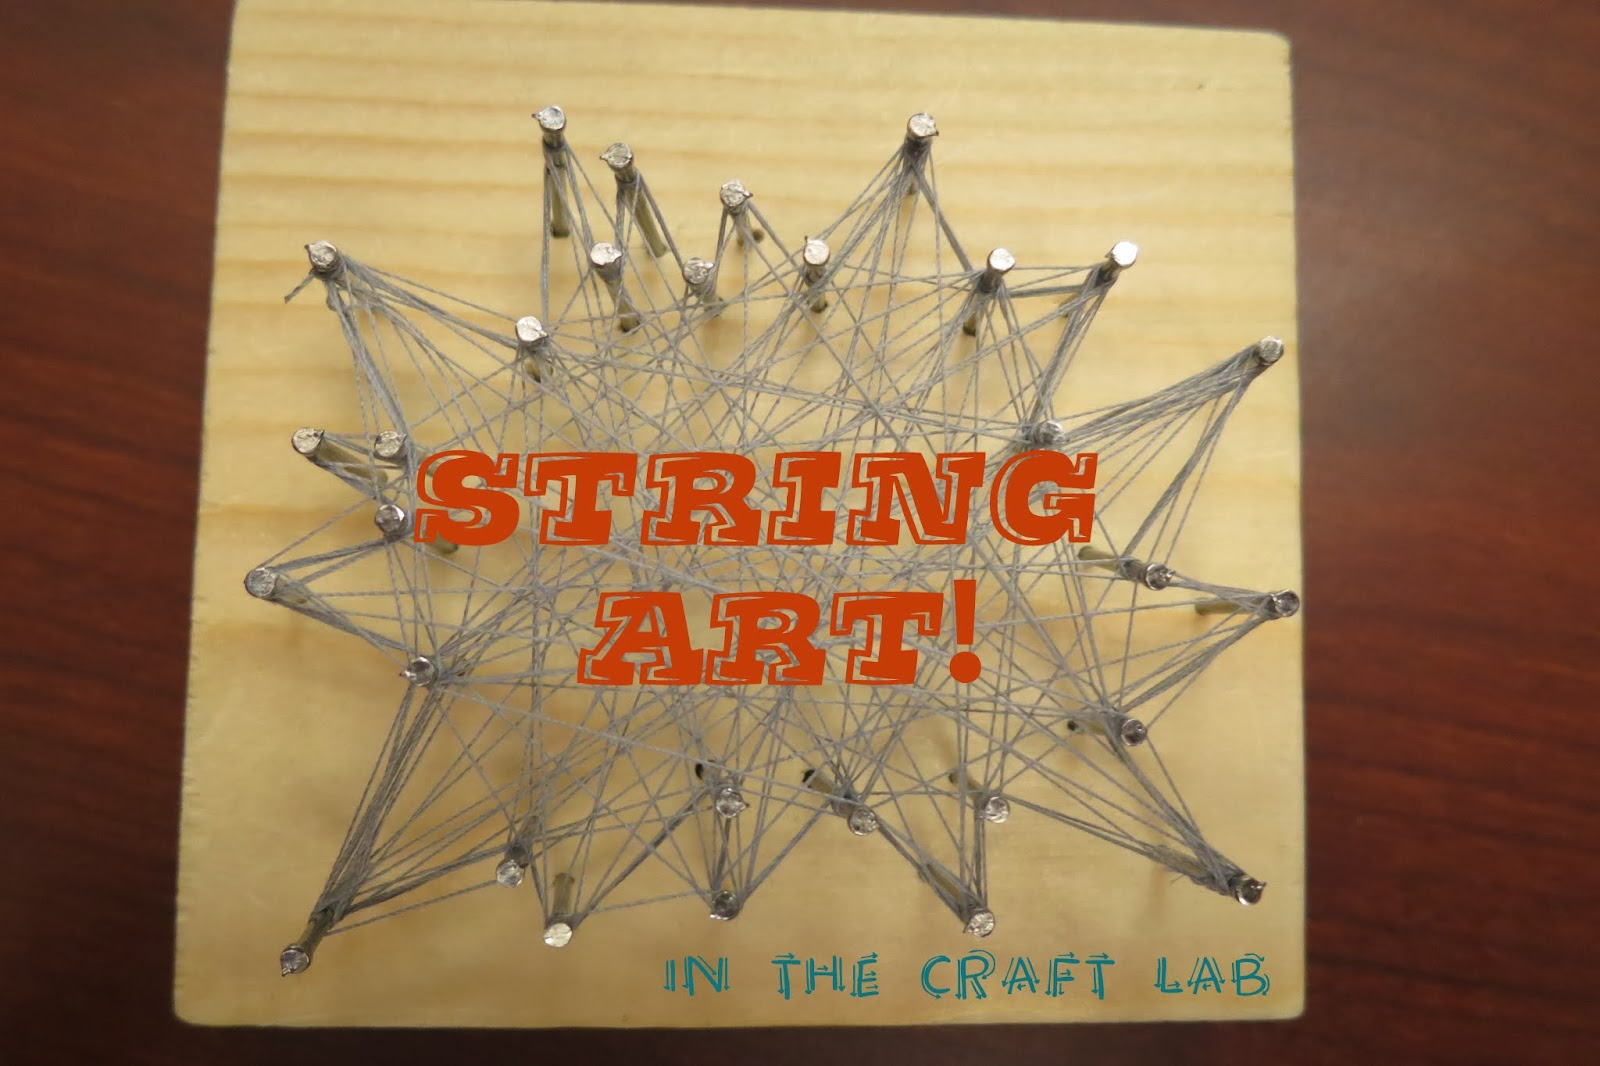 http://librarymakers.blogspot.com/2014/01/craft-lab-string-art.html